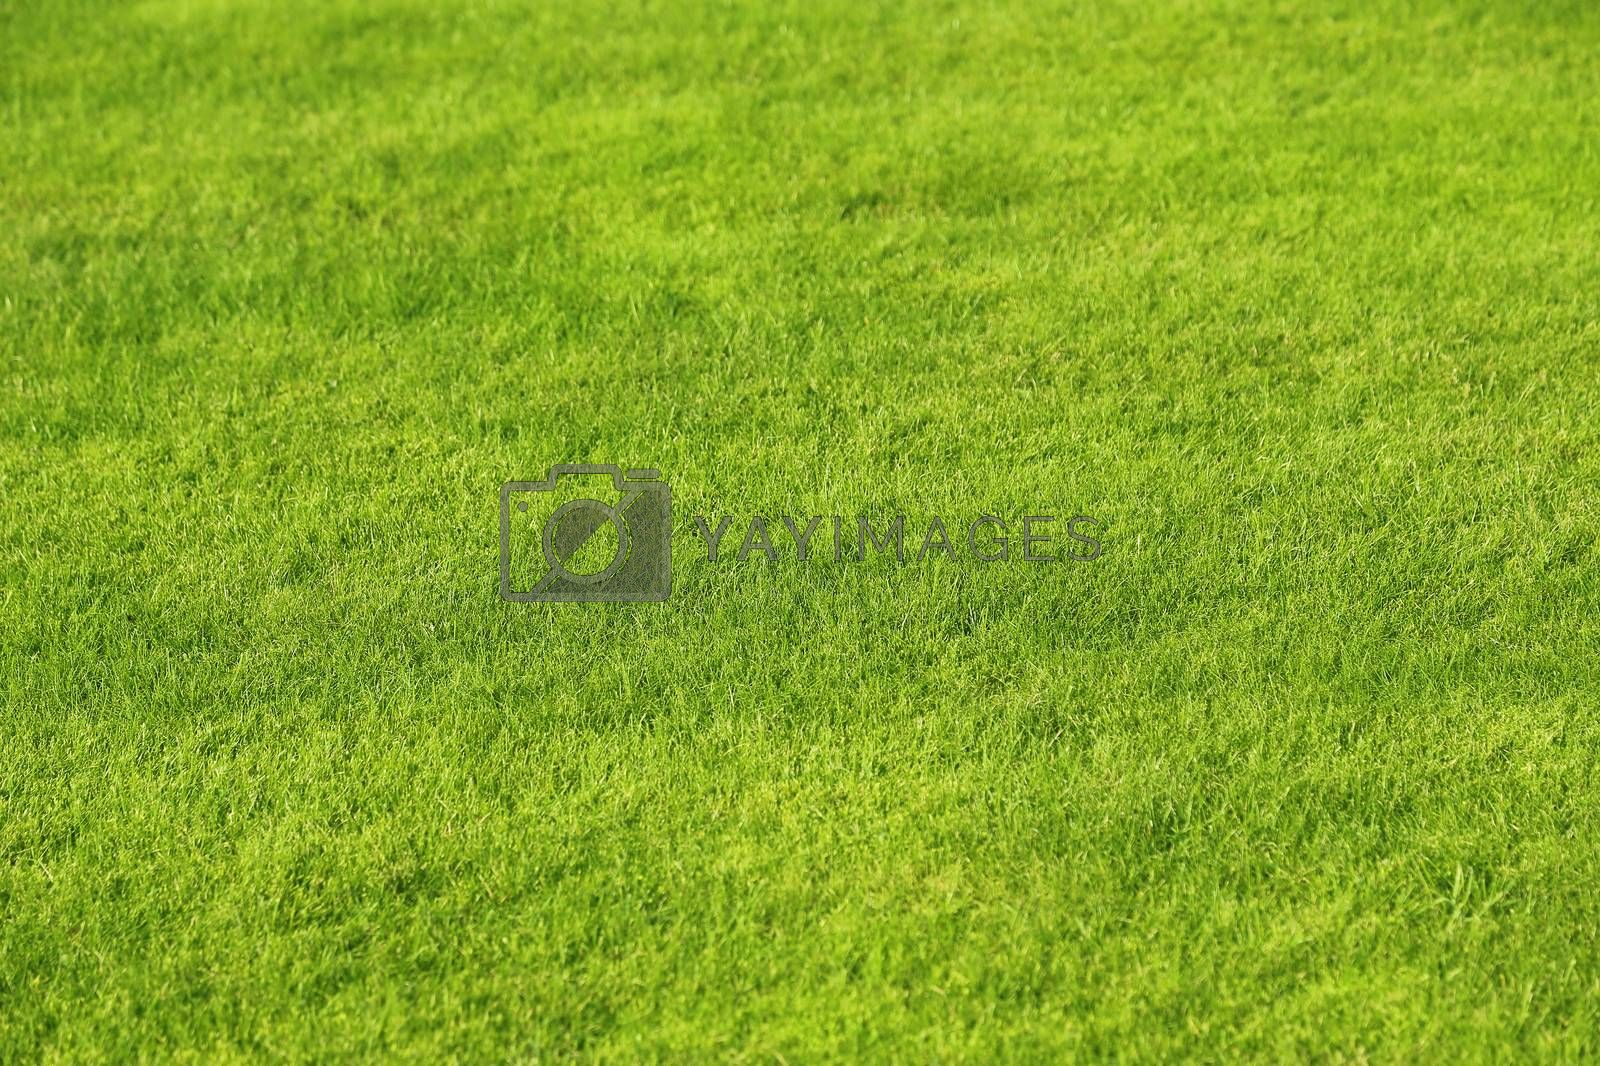 Natural green lawn background